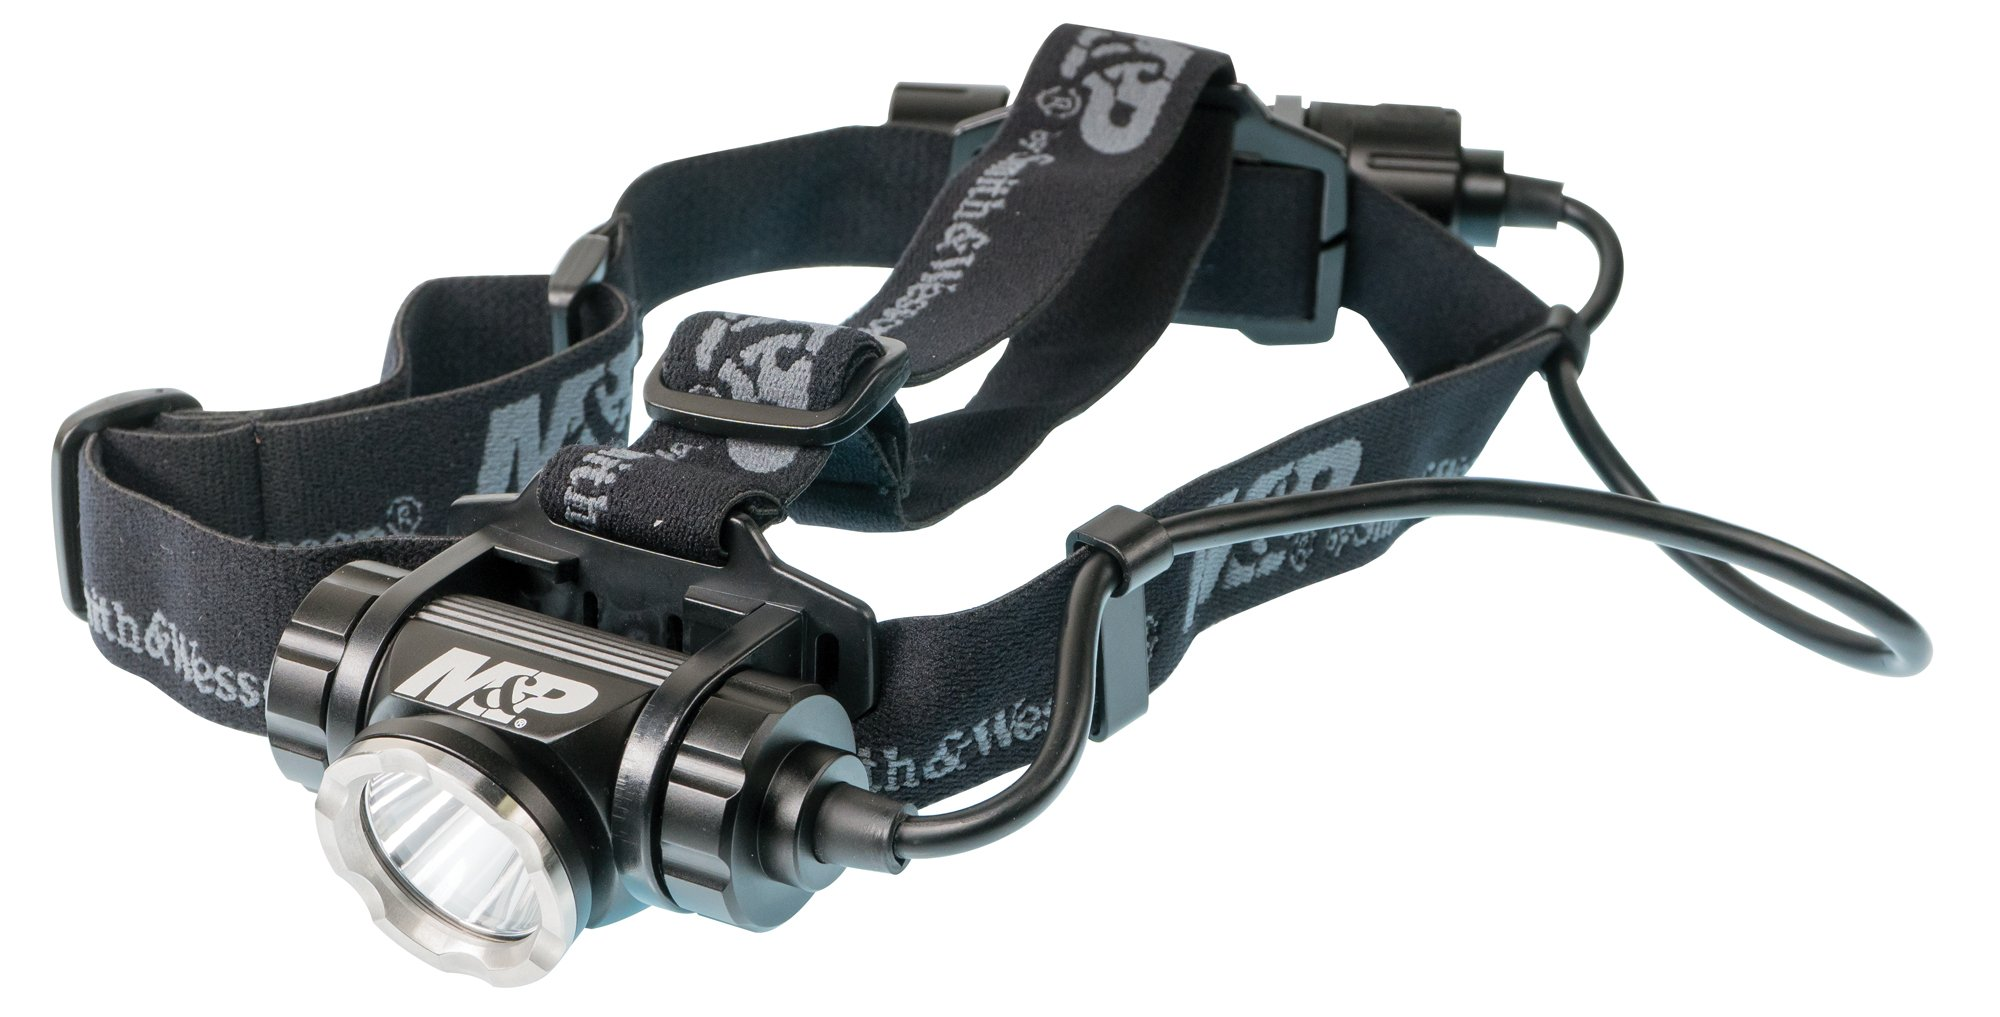 M&P by Smith & Wesson Delta Force HL-20 CREE Headlamp 870 Lumens 7 Mode Waterproof Lightweight Rechargeable Tactical Hunting Camping Hiking Fishing Self-Defense